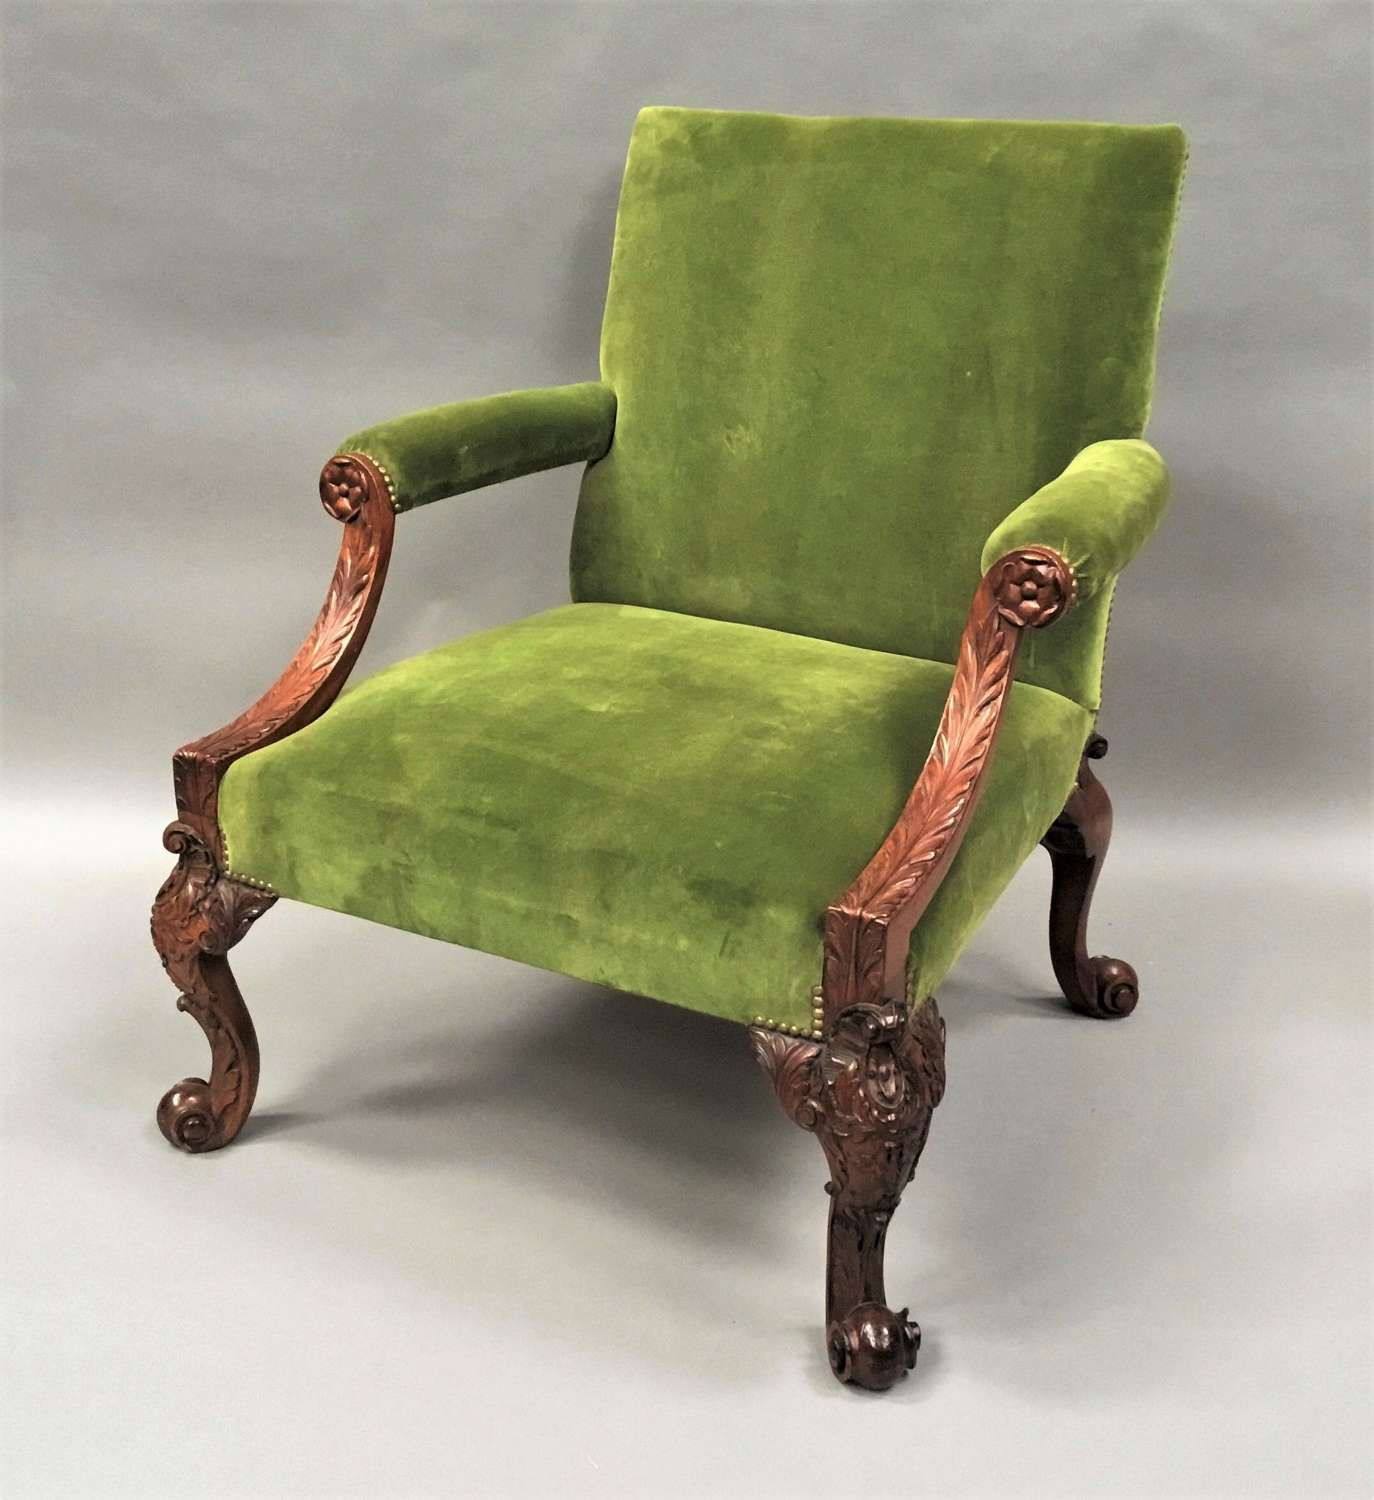 19th large carved mahogany Gainsborough chair